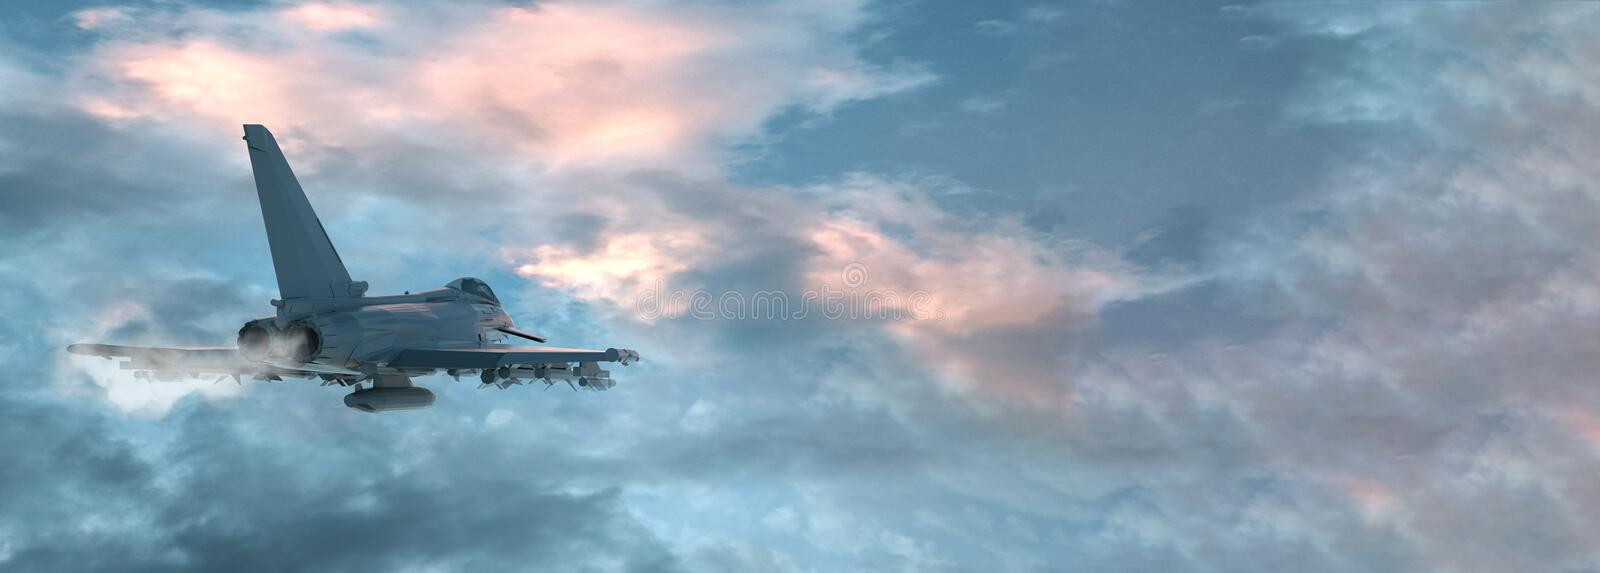 View of a fighter jet above the clouds with copy space. 3D render.  royalty free illustration